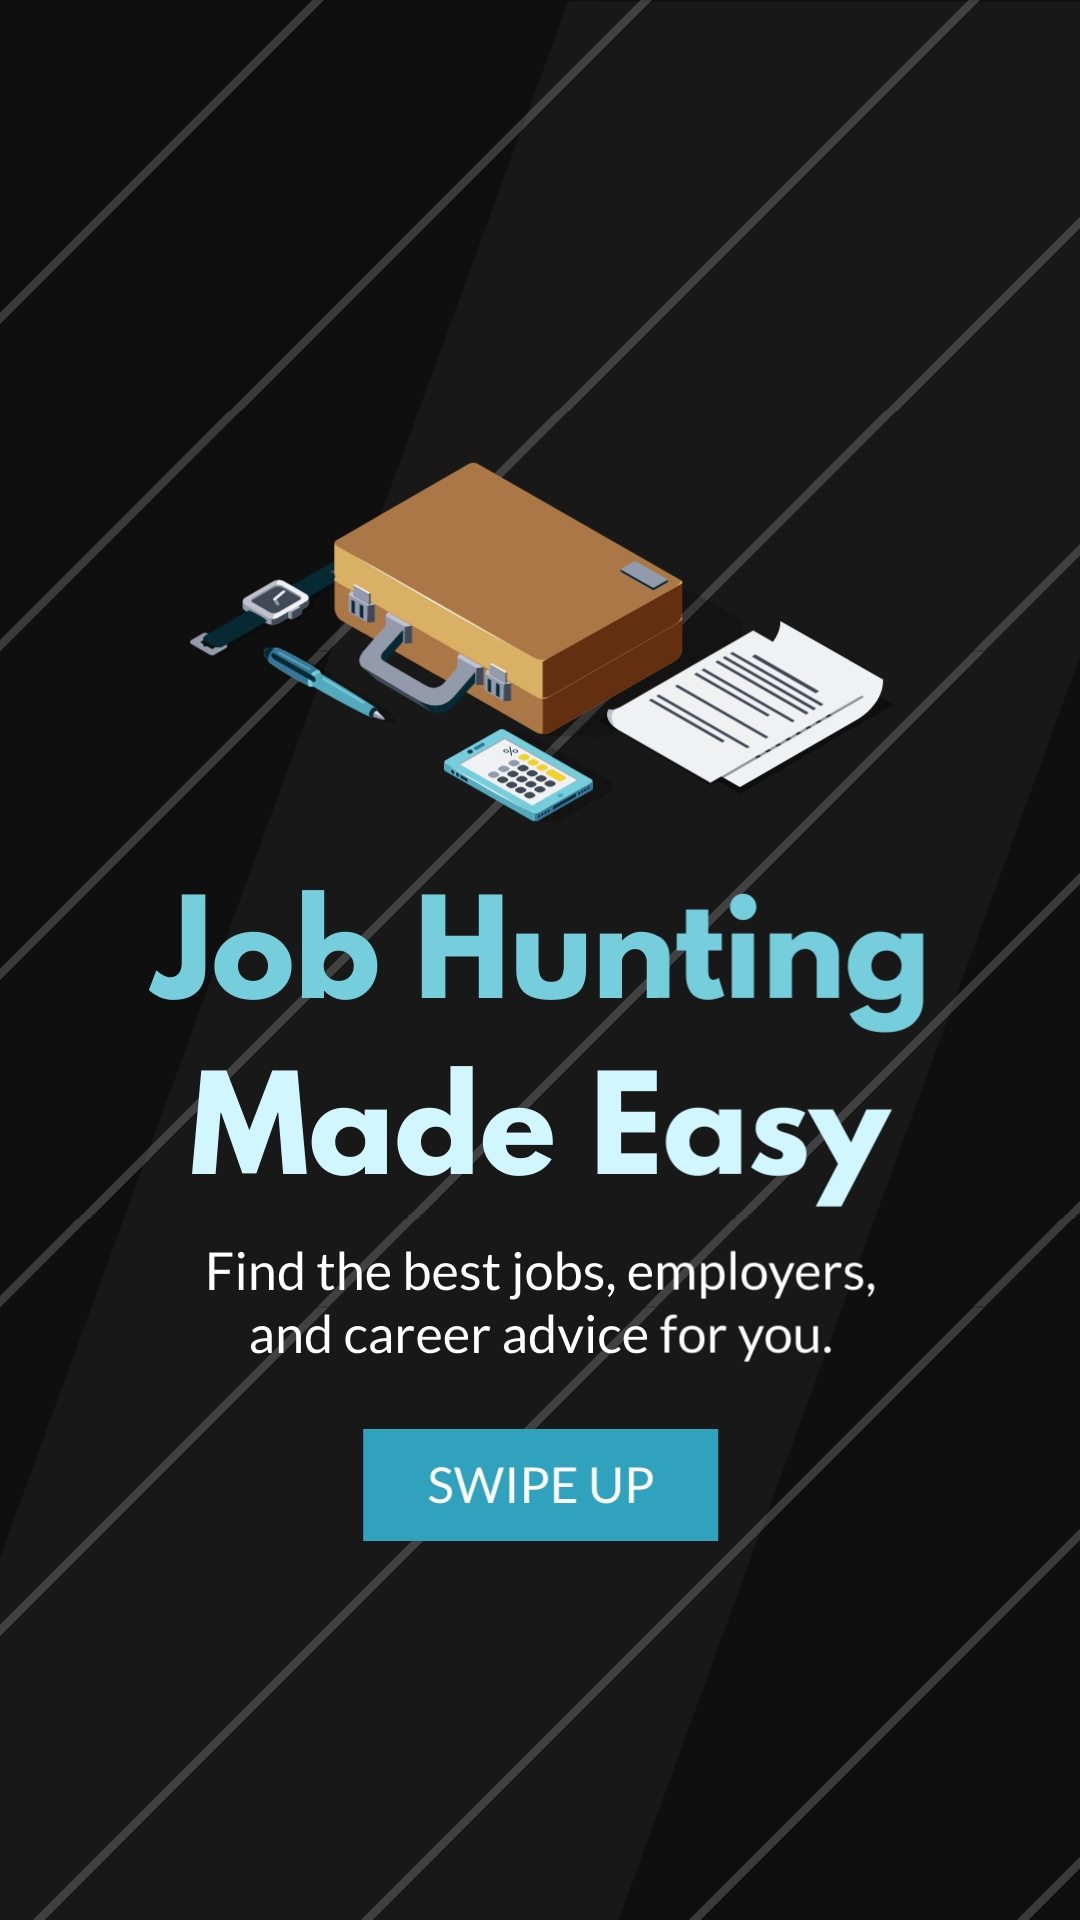 Job Hunting Made Easy Vertical Template